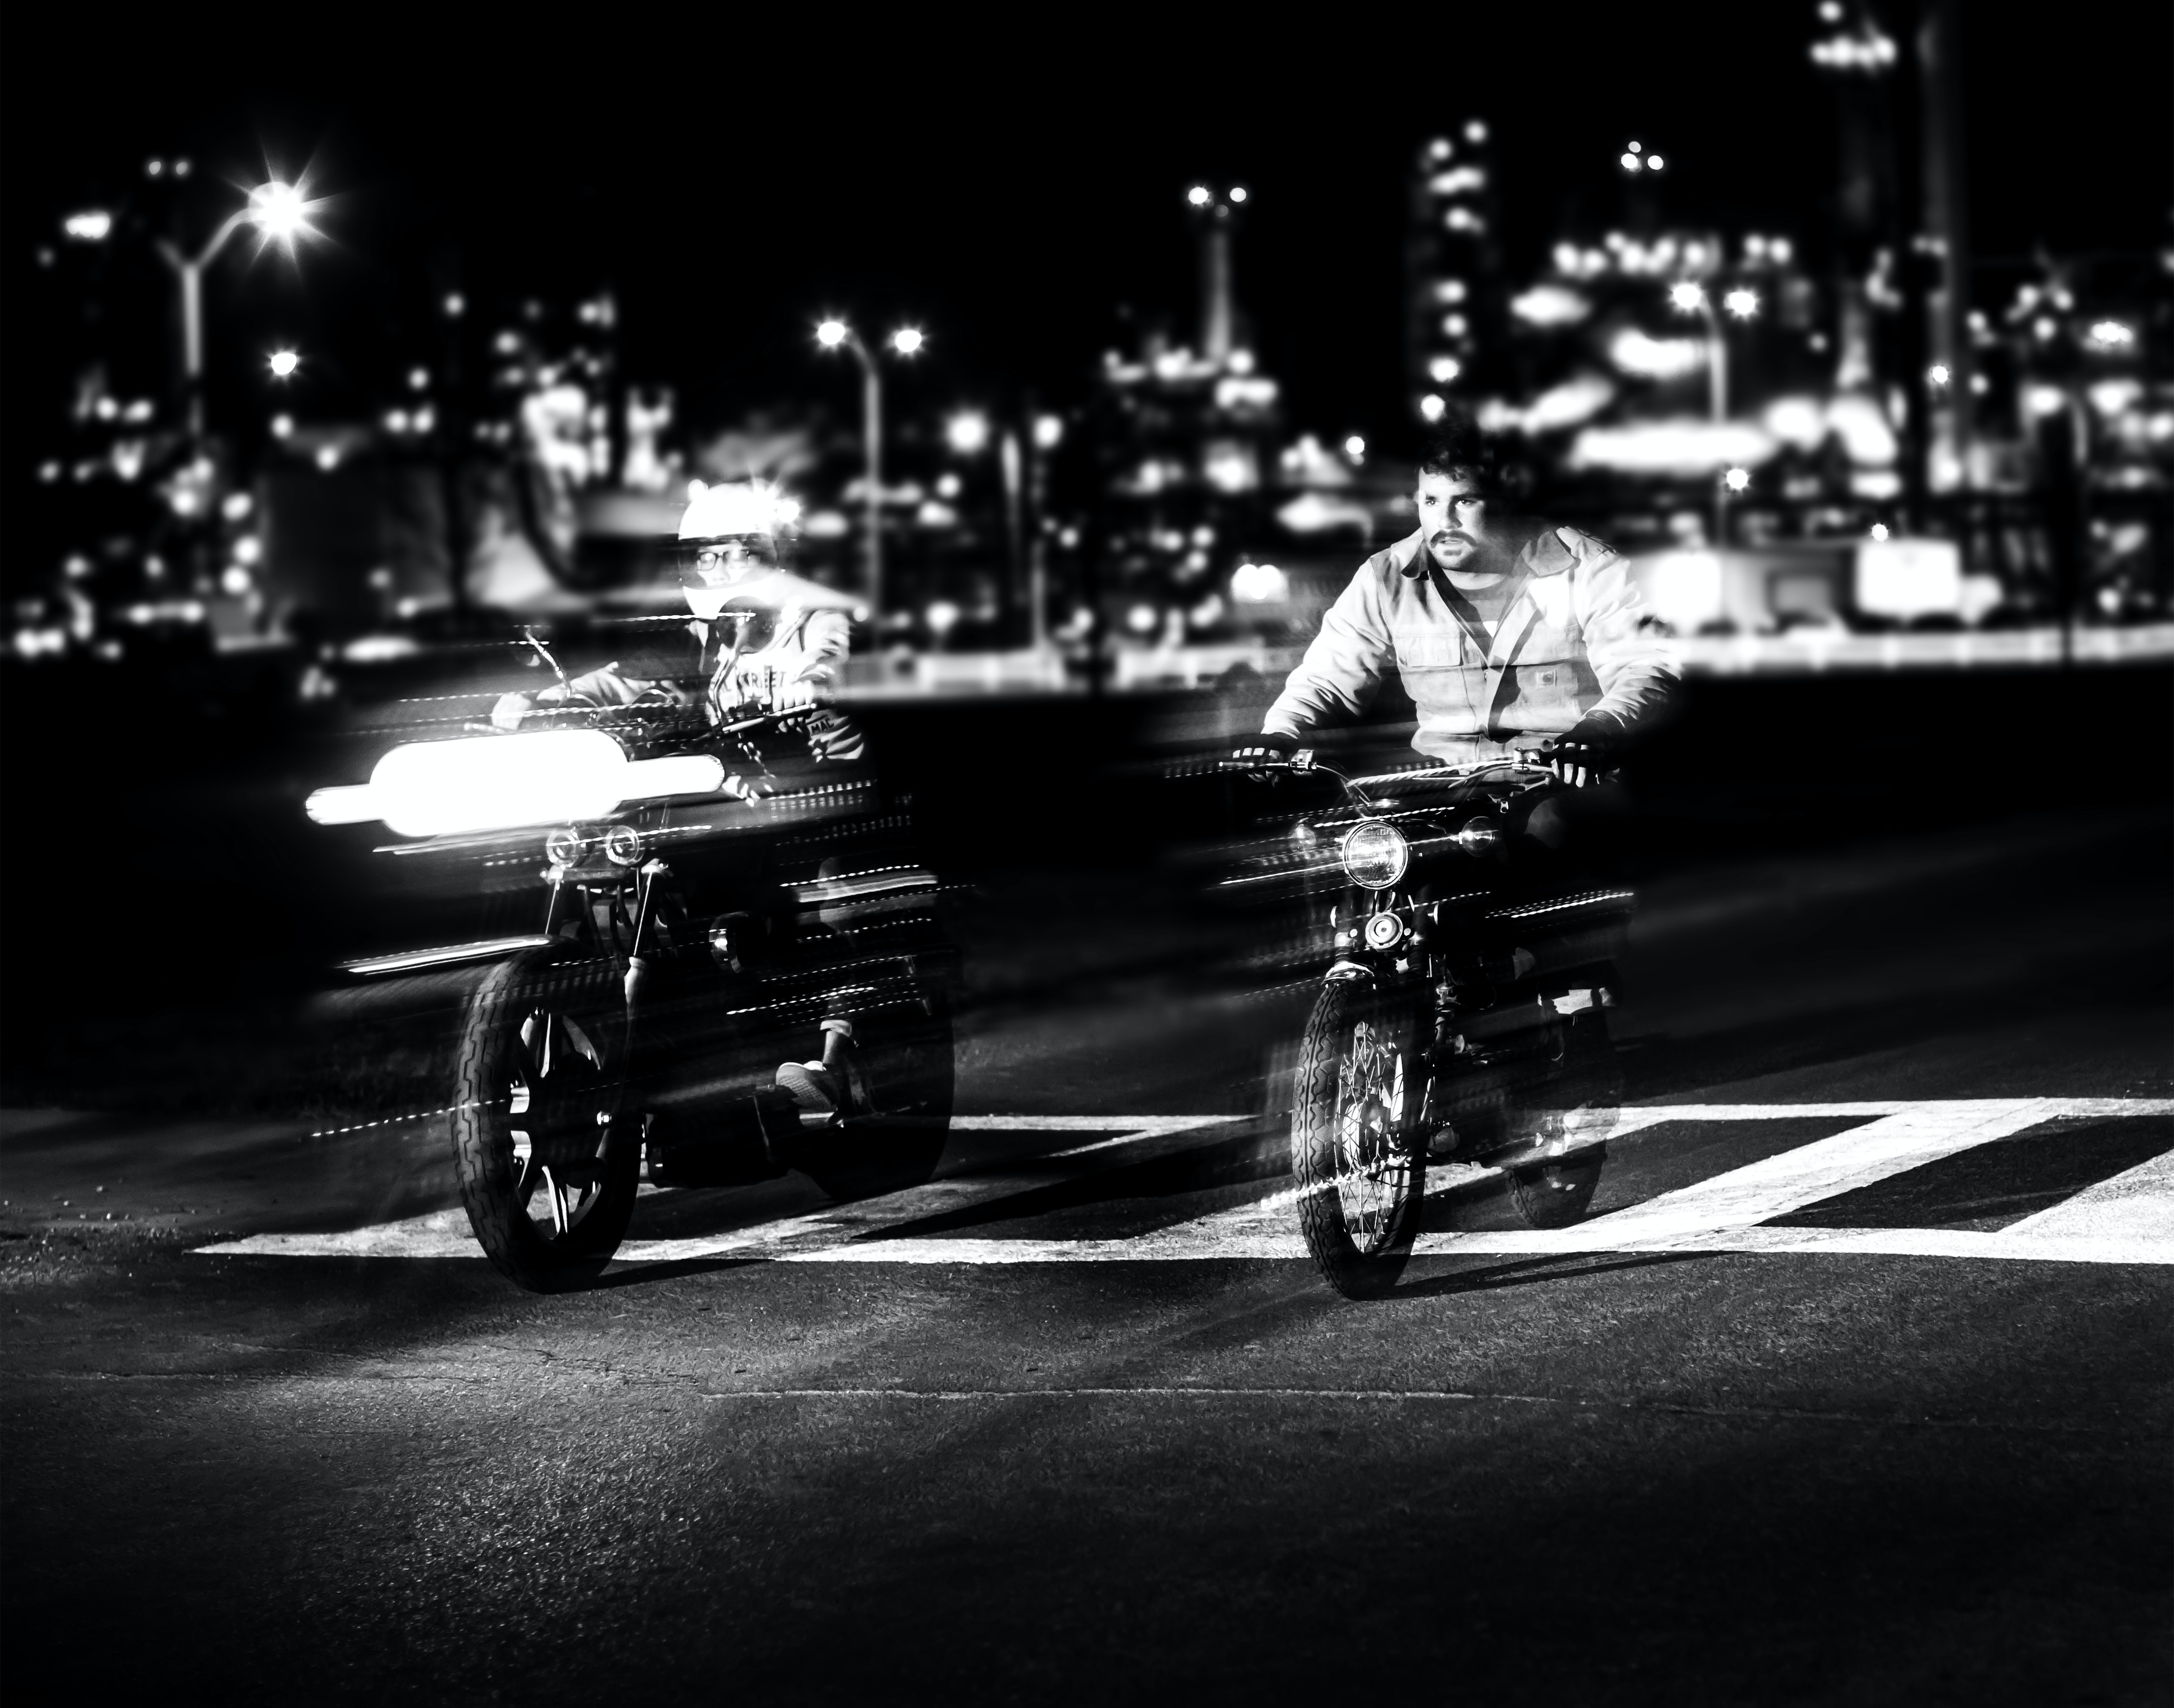 Black and white motion shot of people riding motorbikes on road at night